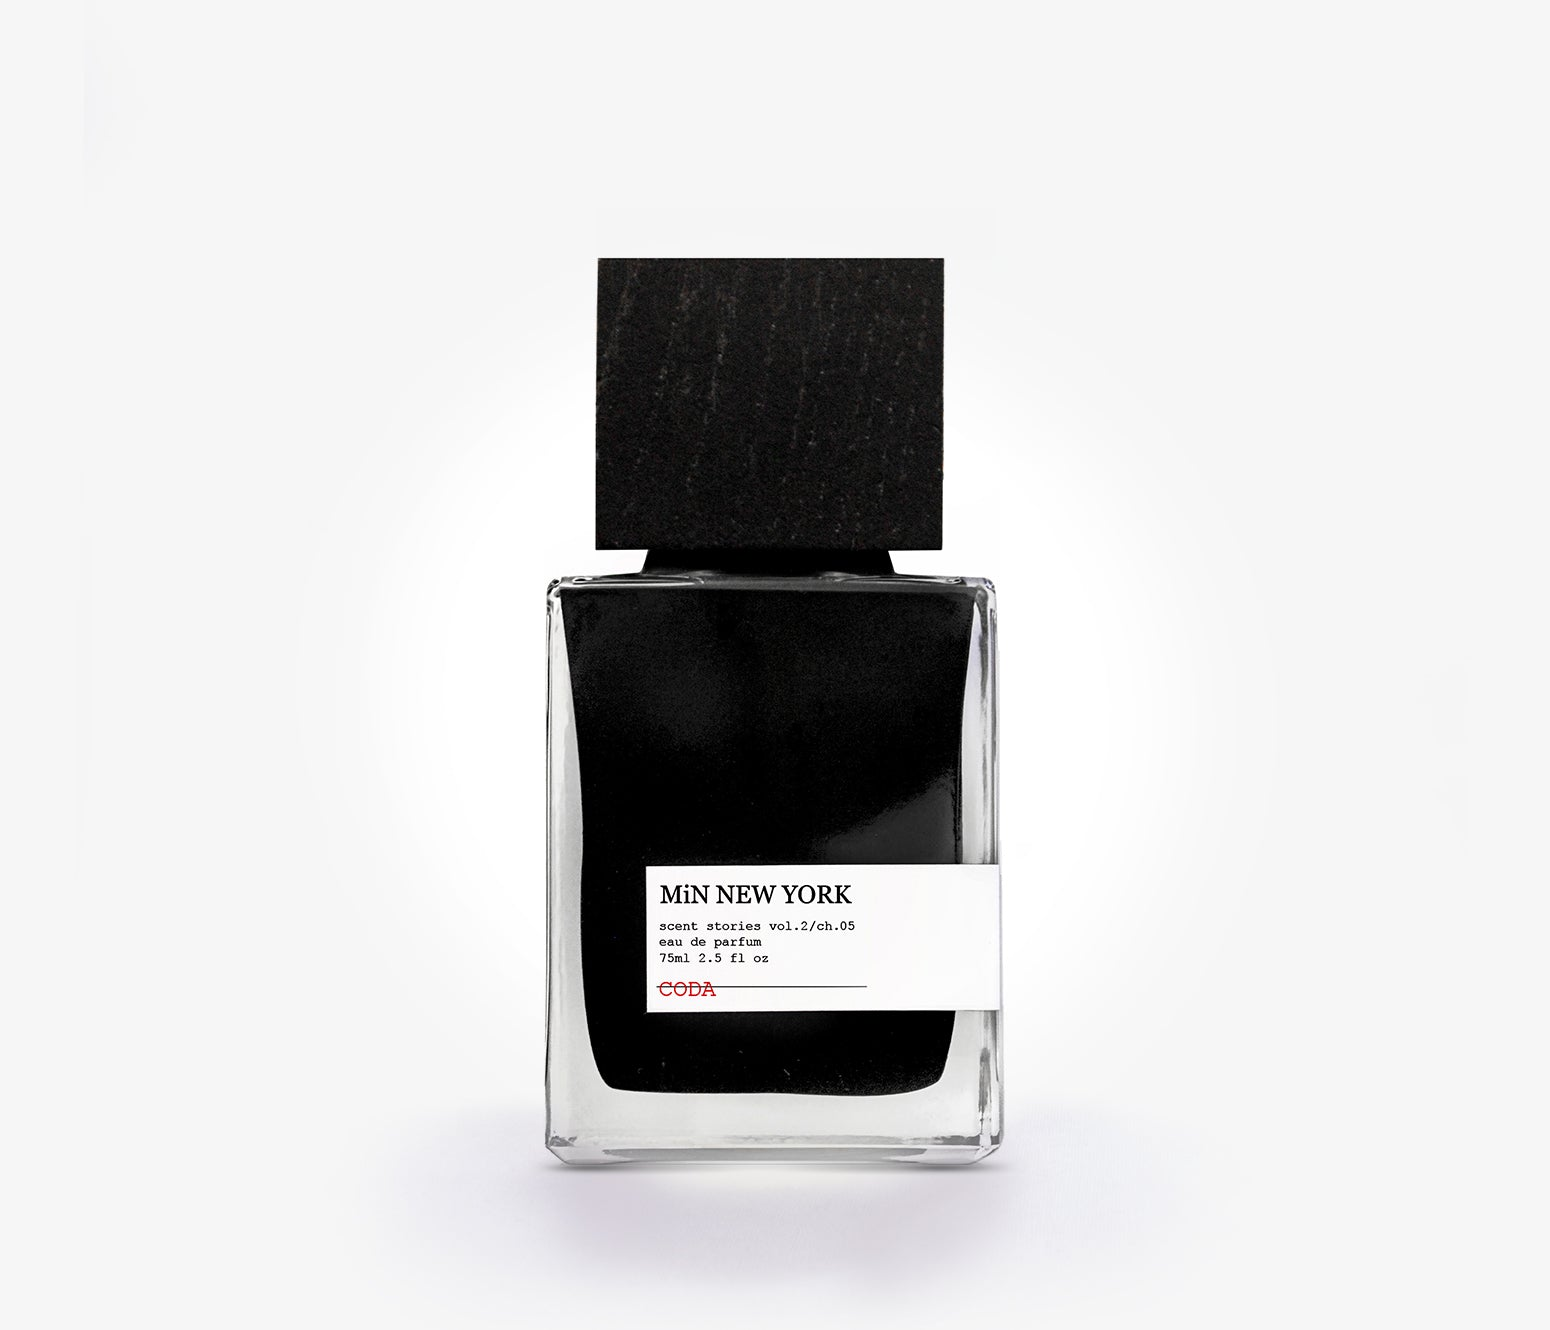 MiN New York - Coda - 75ml - JSO001 - Product Image - Fragrance - Les Senteurs